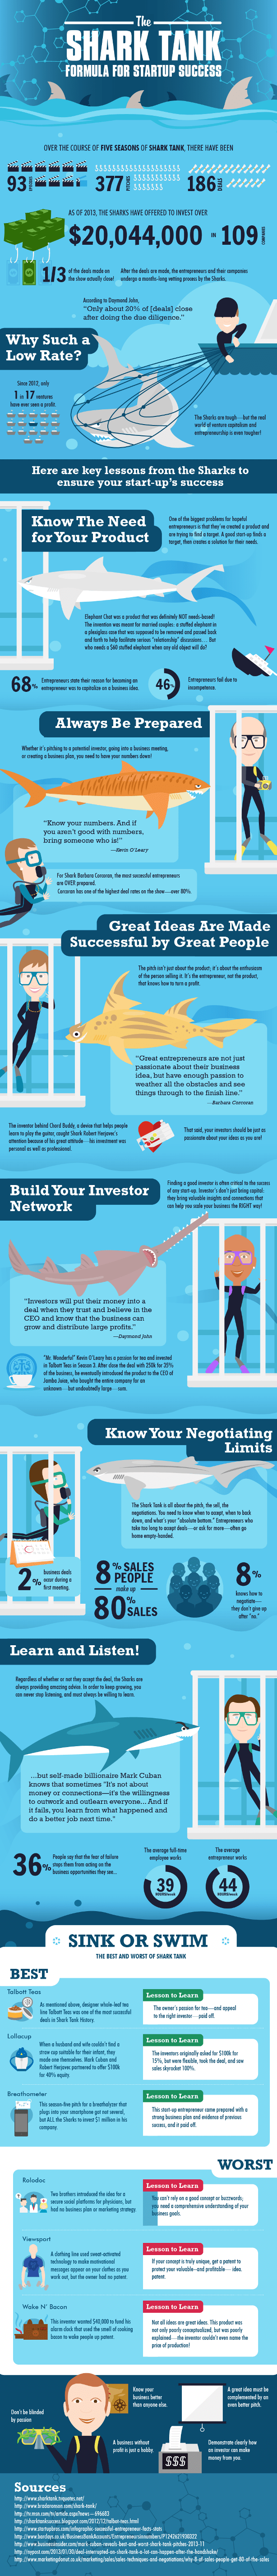 The Shark Tank Formula For Startup Success (Infographic)